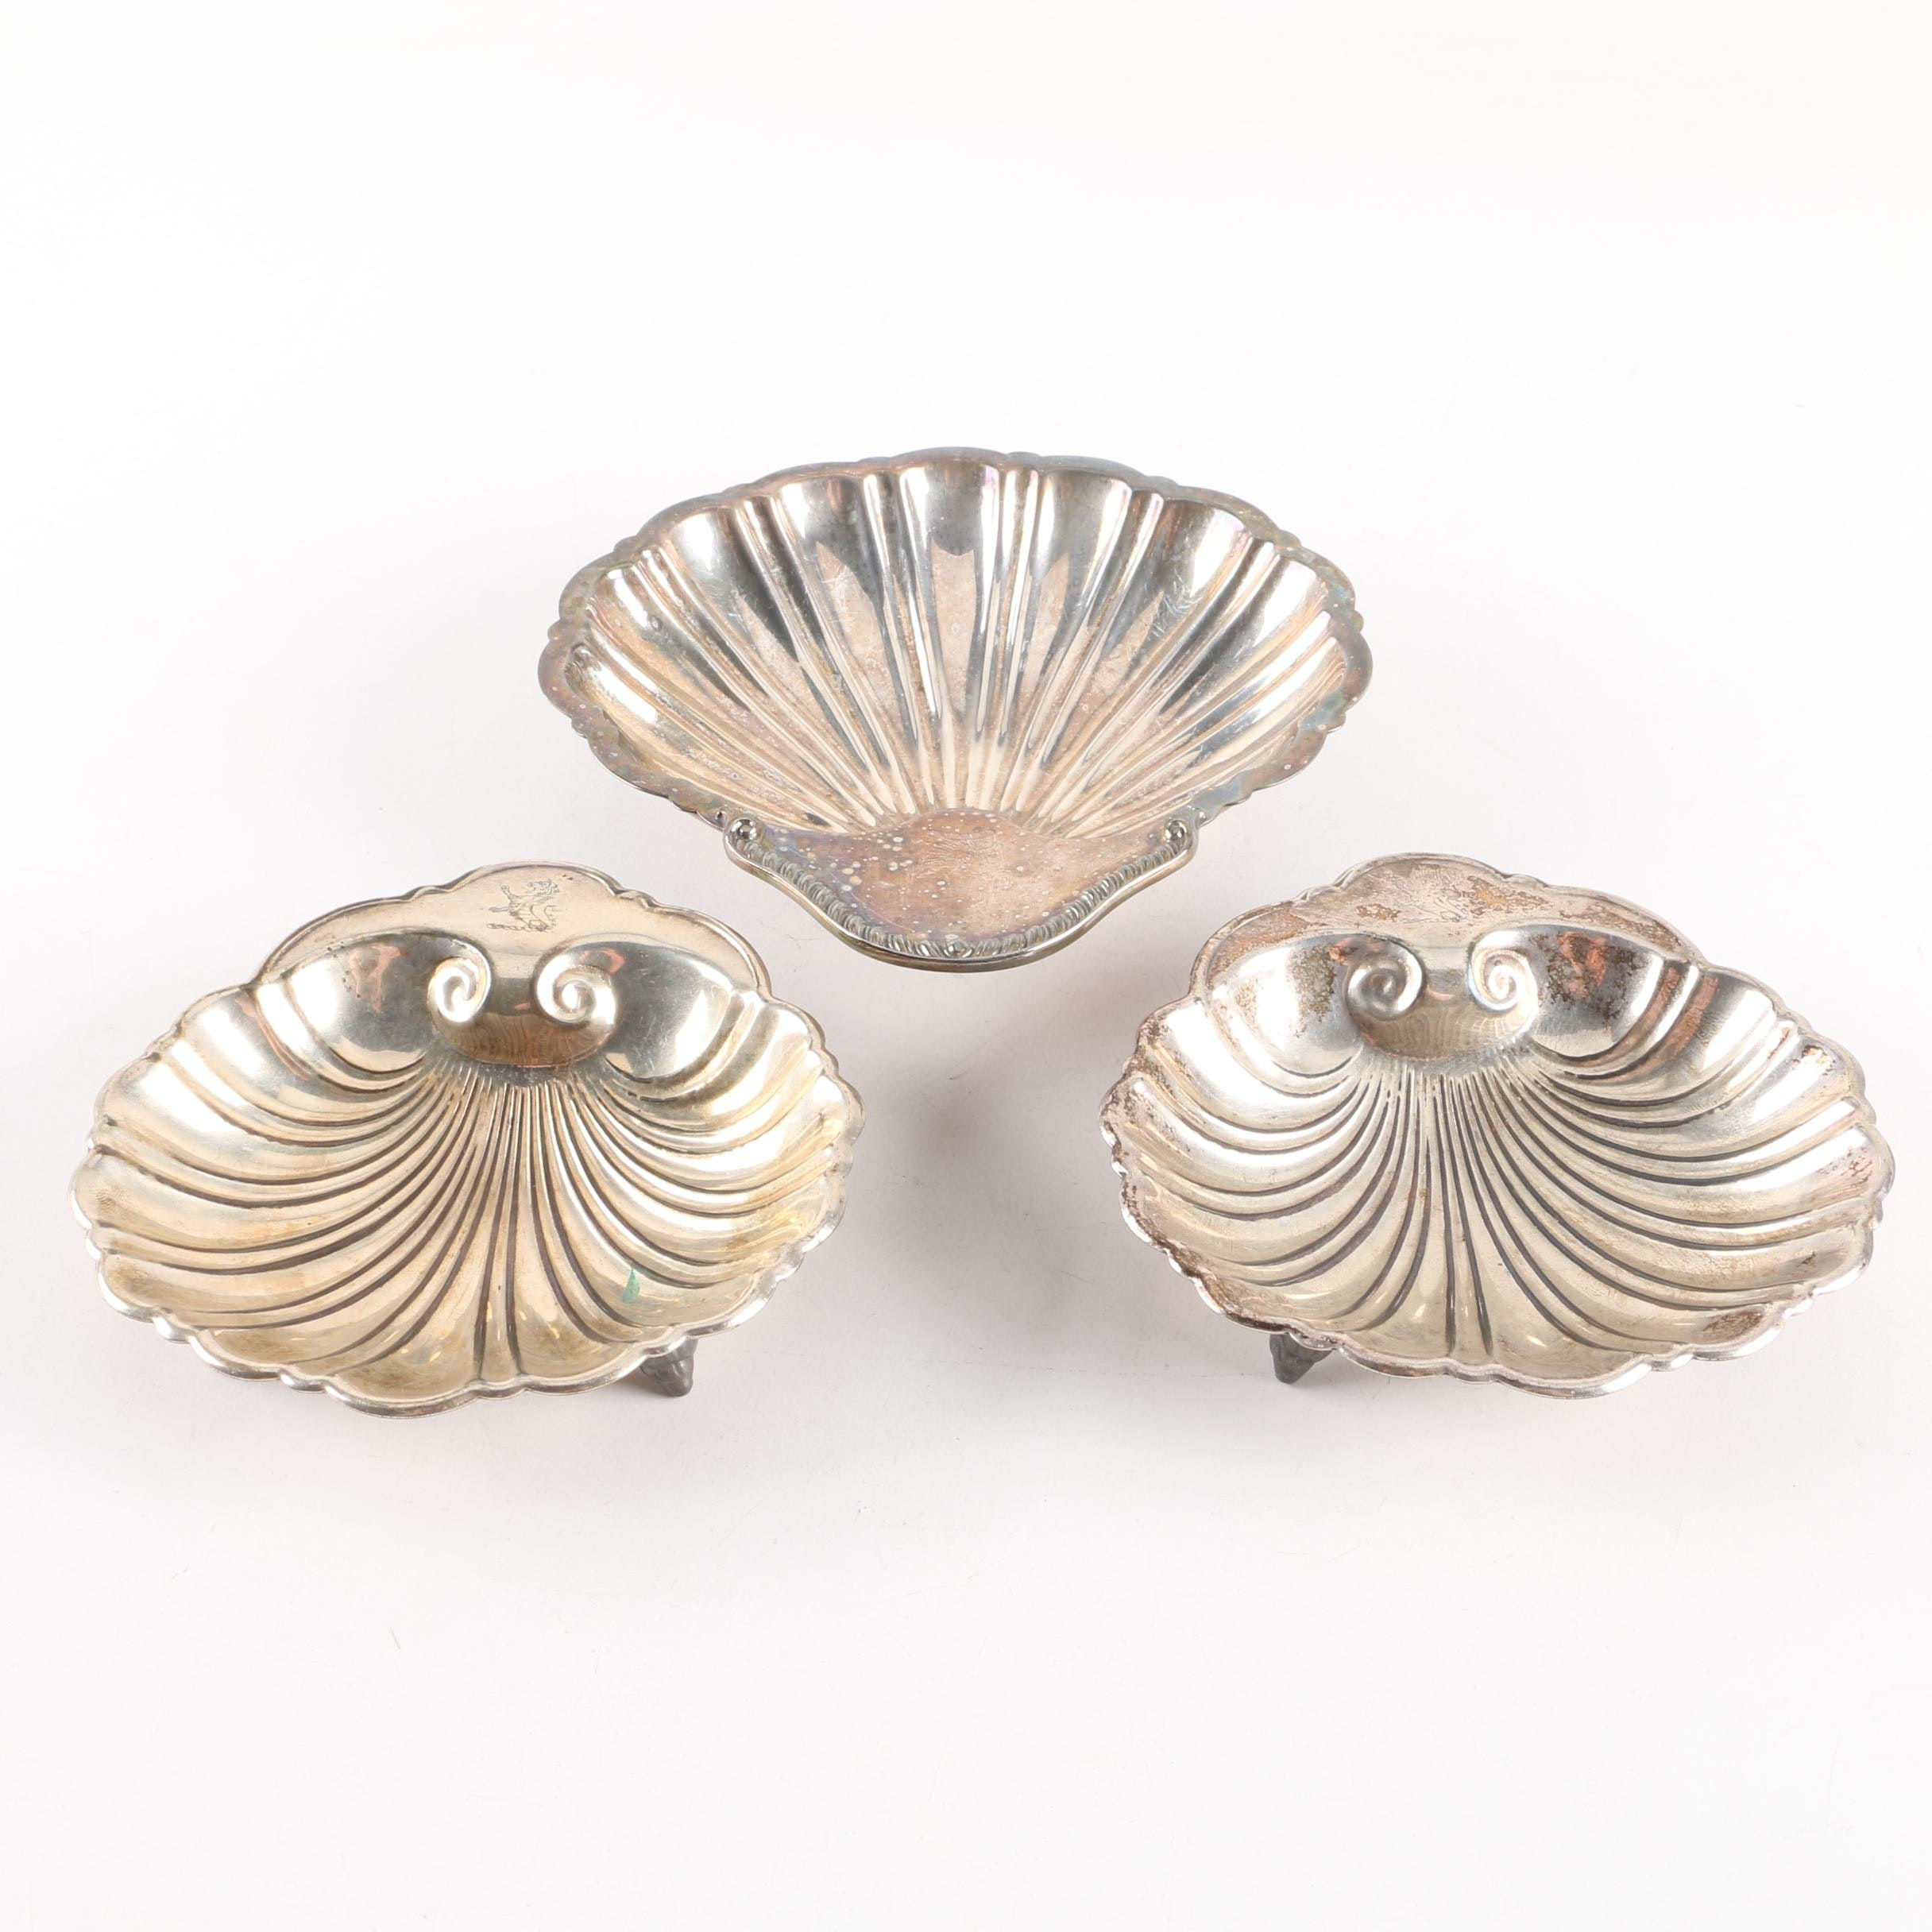 Vintage Silver Plate Shell Dishes Featuring Friedman Silver Co. and Barbour